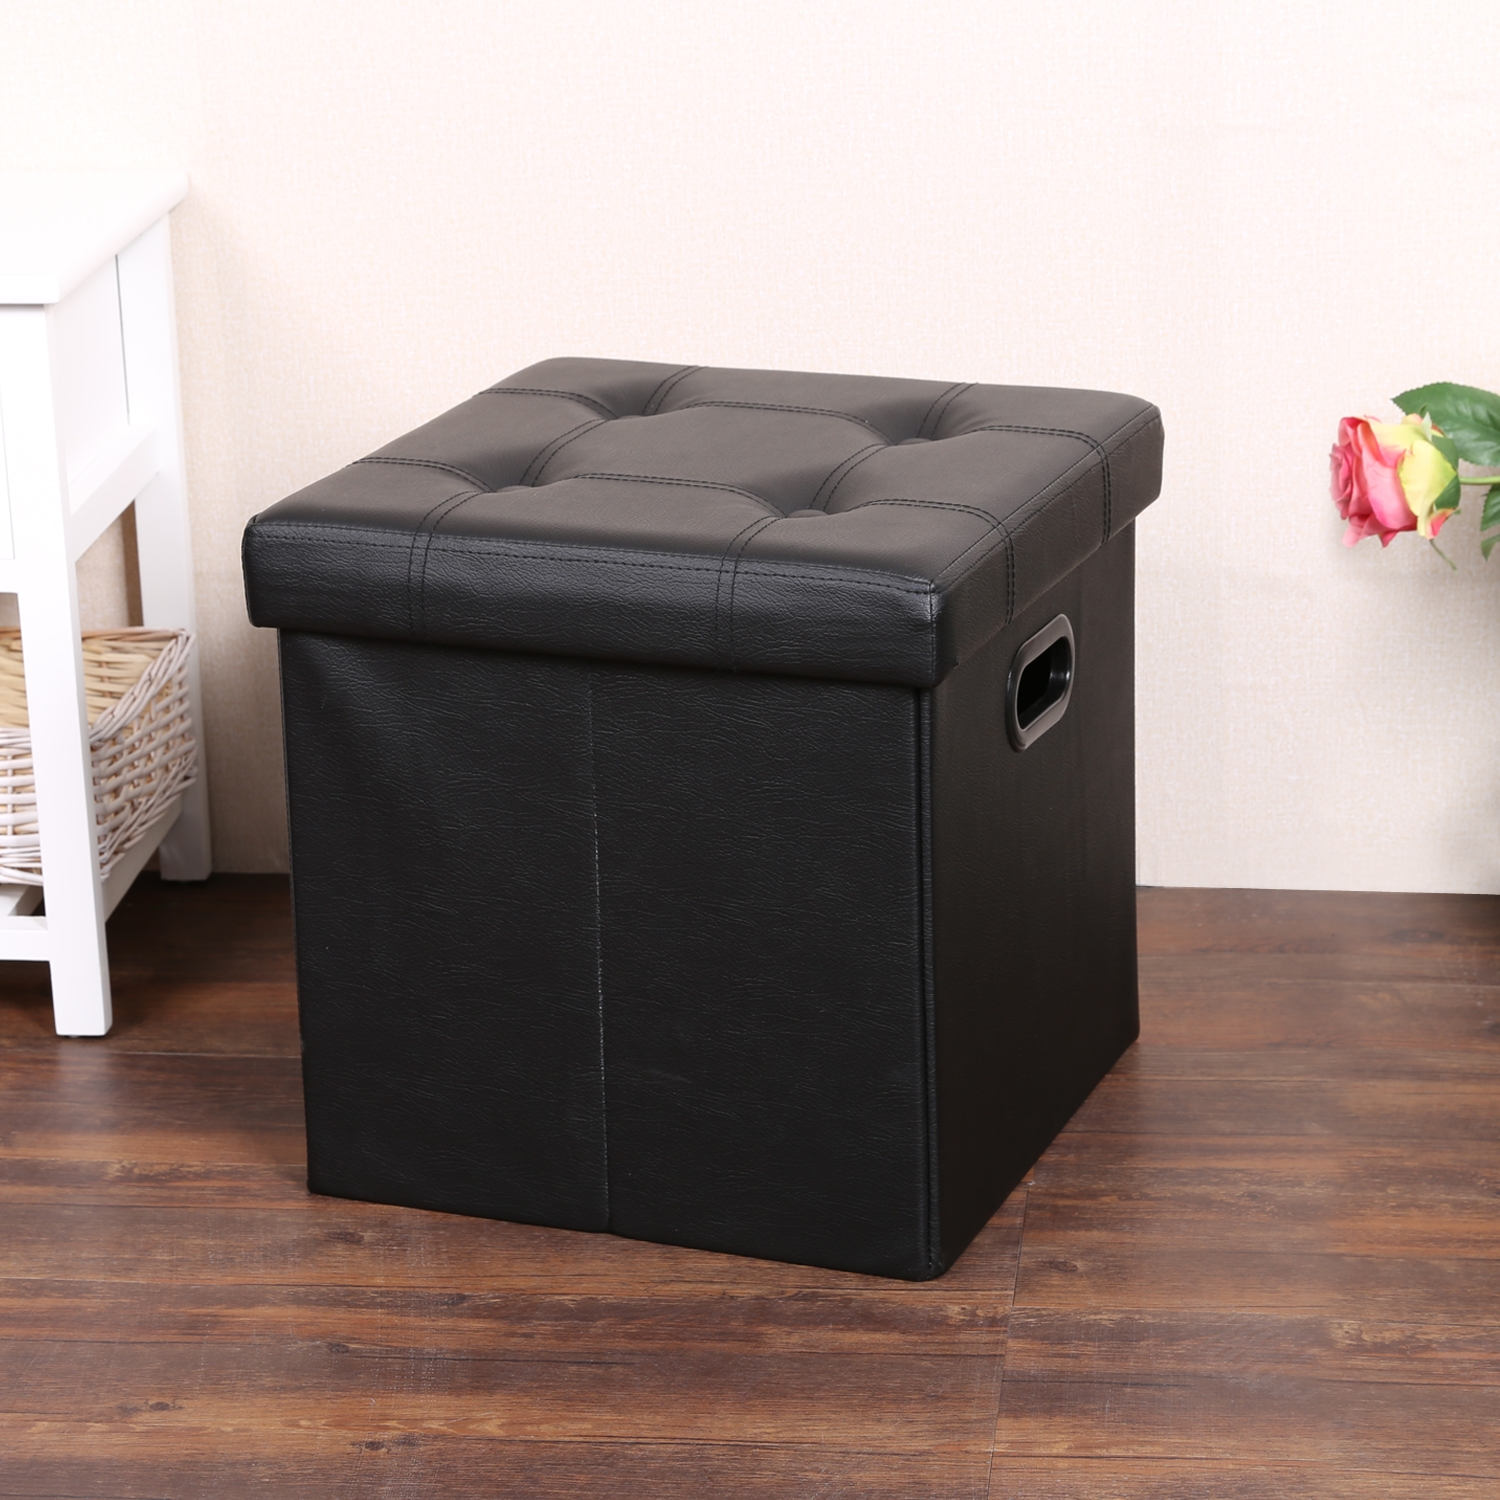 Foldable Storage Stool Seat  Cube Footrest Box Ottoman Stool Pouf Leather Seat Foot Table